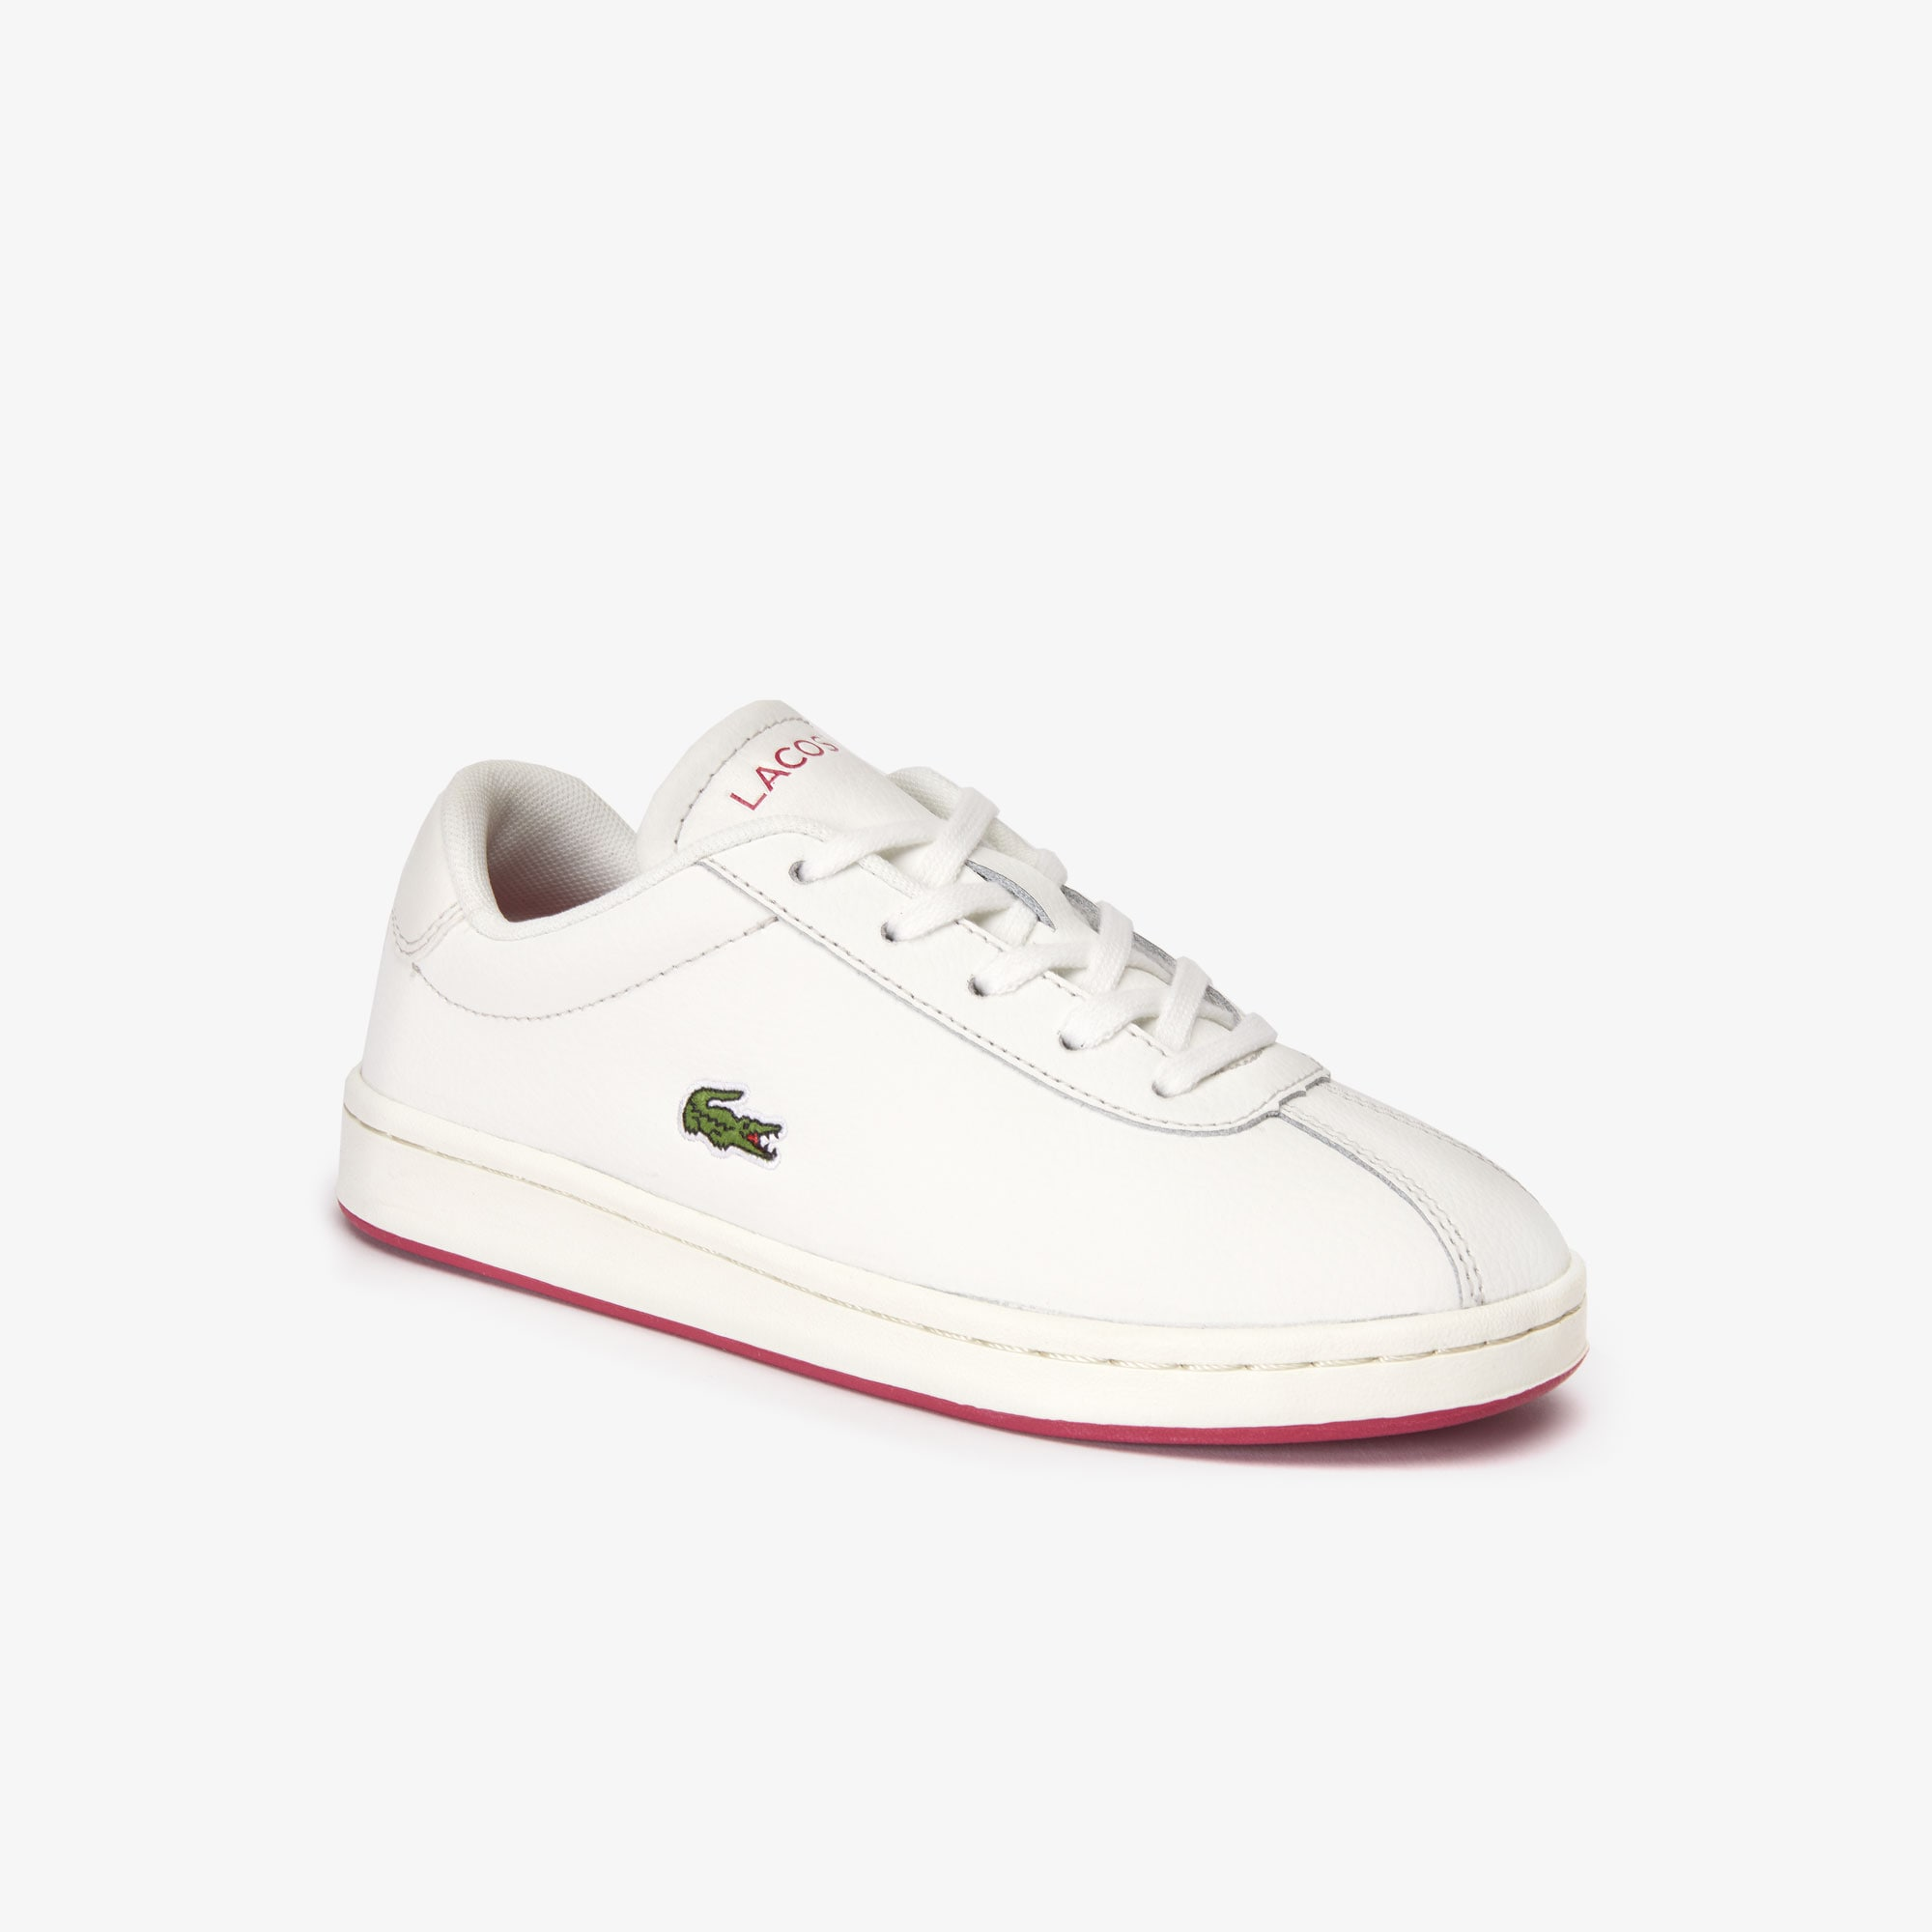 Chaussures Lacoste FilleEnfant Lacoste Chaussures FilleEnfant Chaussures FilleEnfant rxoBedC